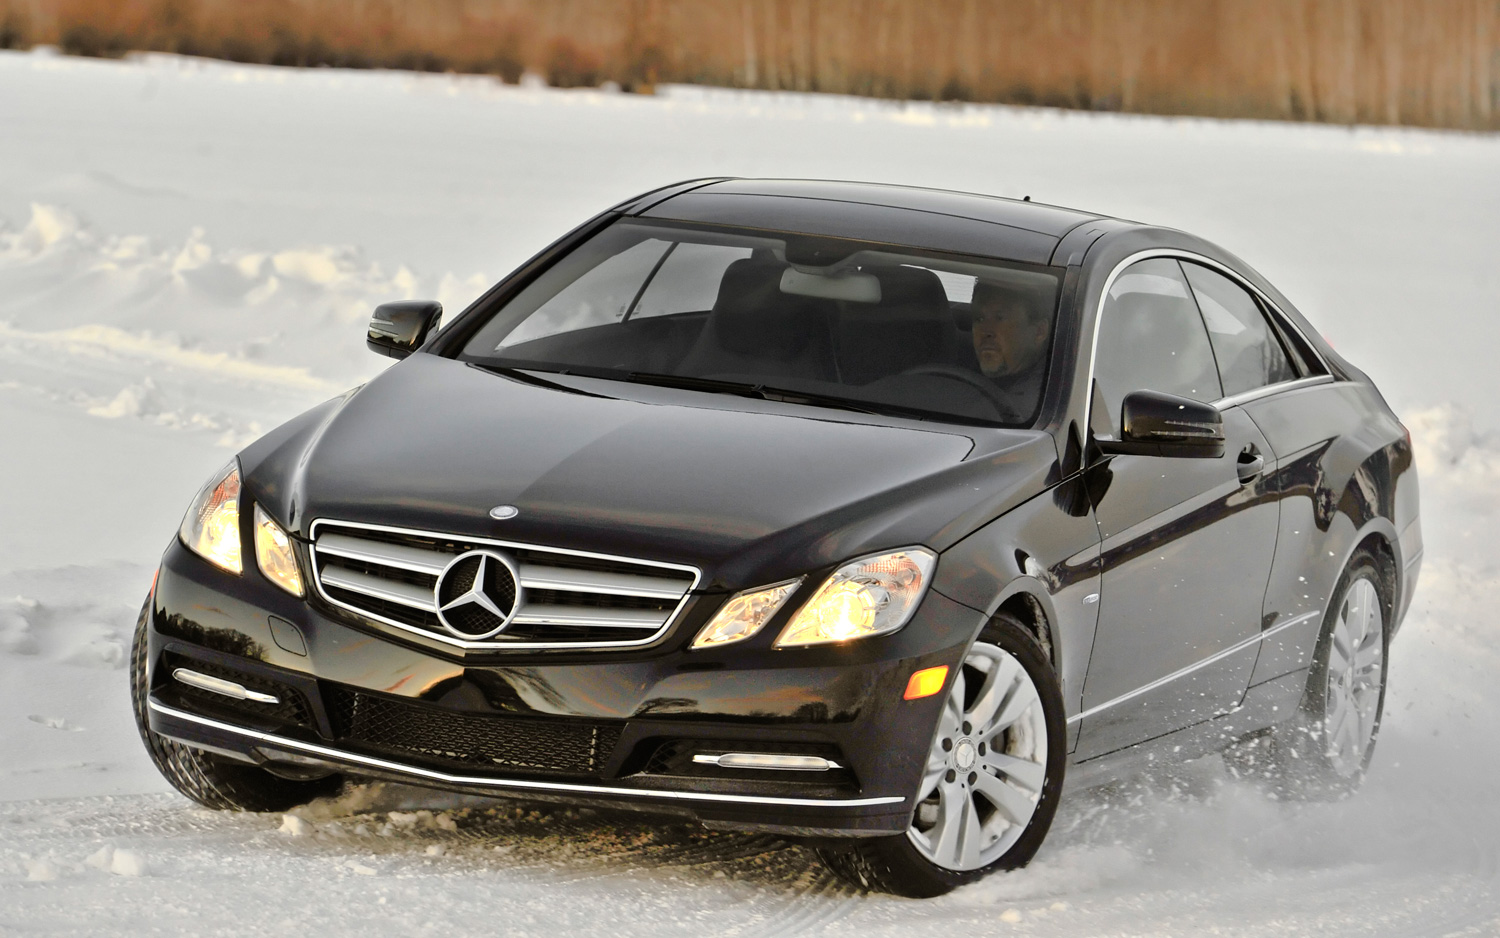 Mercedes-benz e350 photo - 2